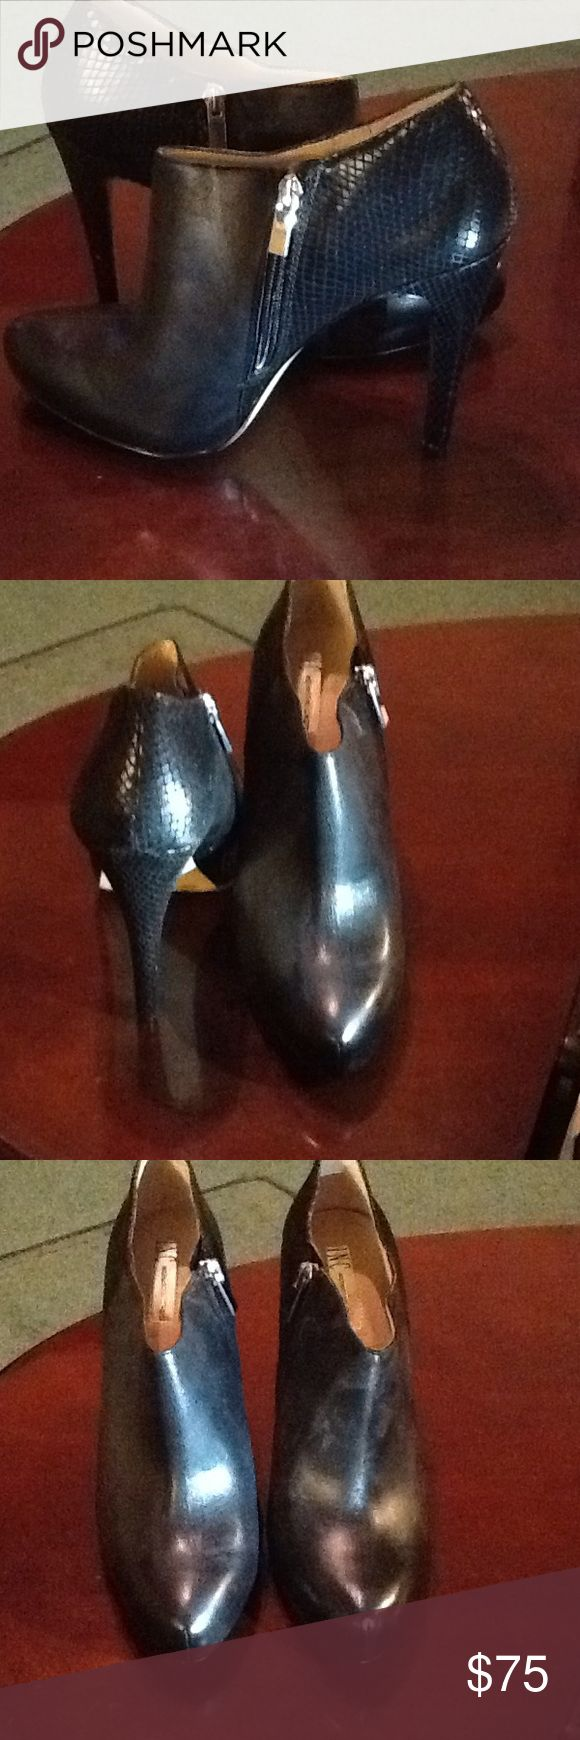 INC BLACK ANKLE HIGH HEEL SHOES INC INTERNATIONAL CONCEPTS BLACK ANKLE HIGH HEEL SHOES SIZE 10M NEW WITH BOX INC International Concepts Shoes Heels